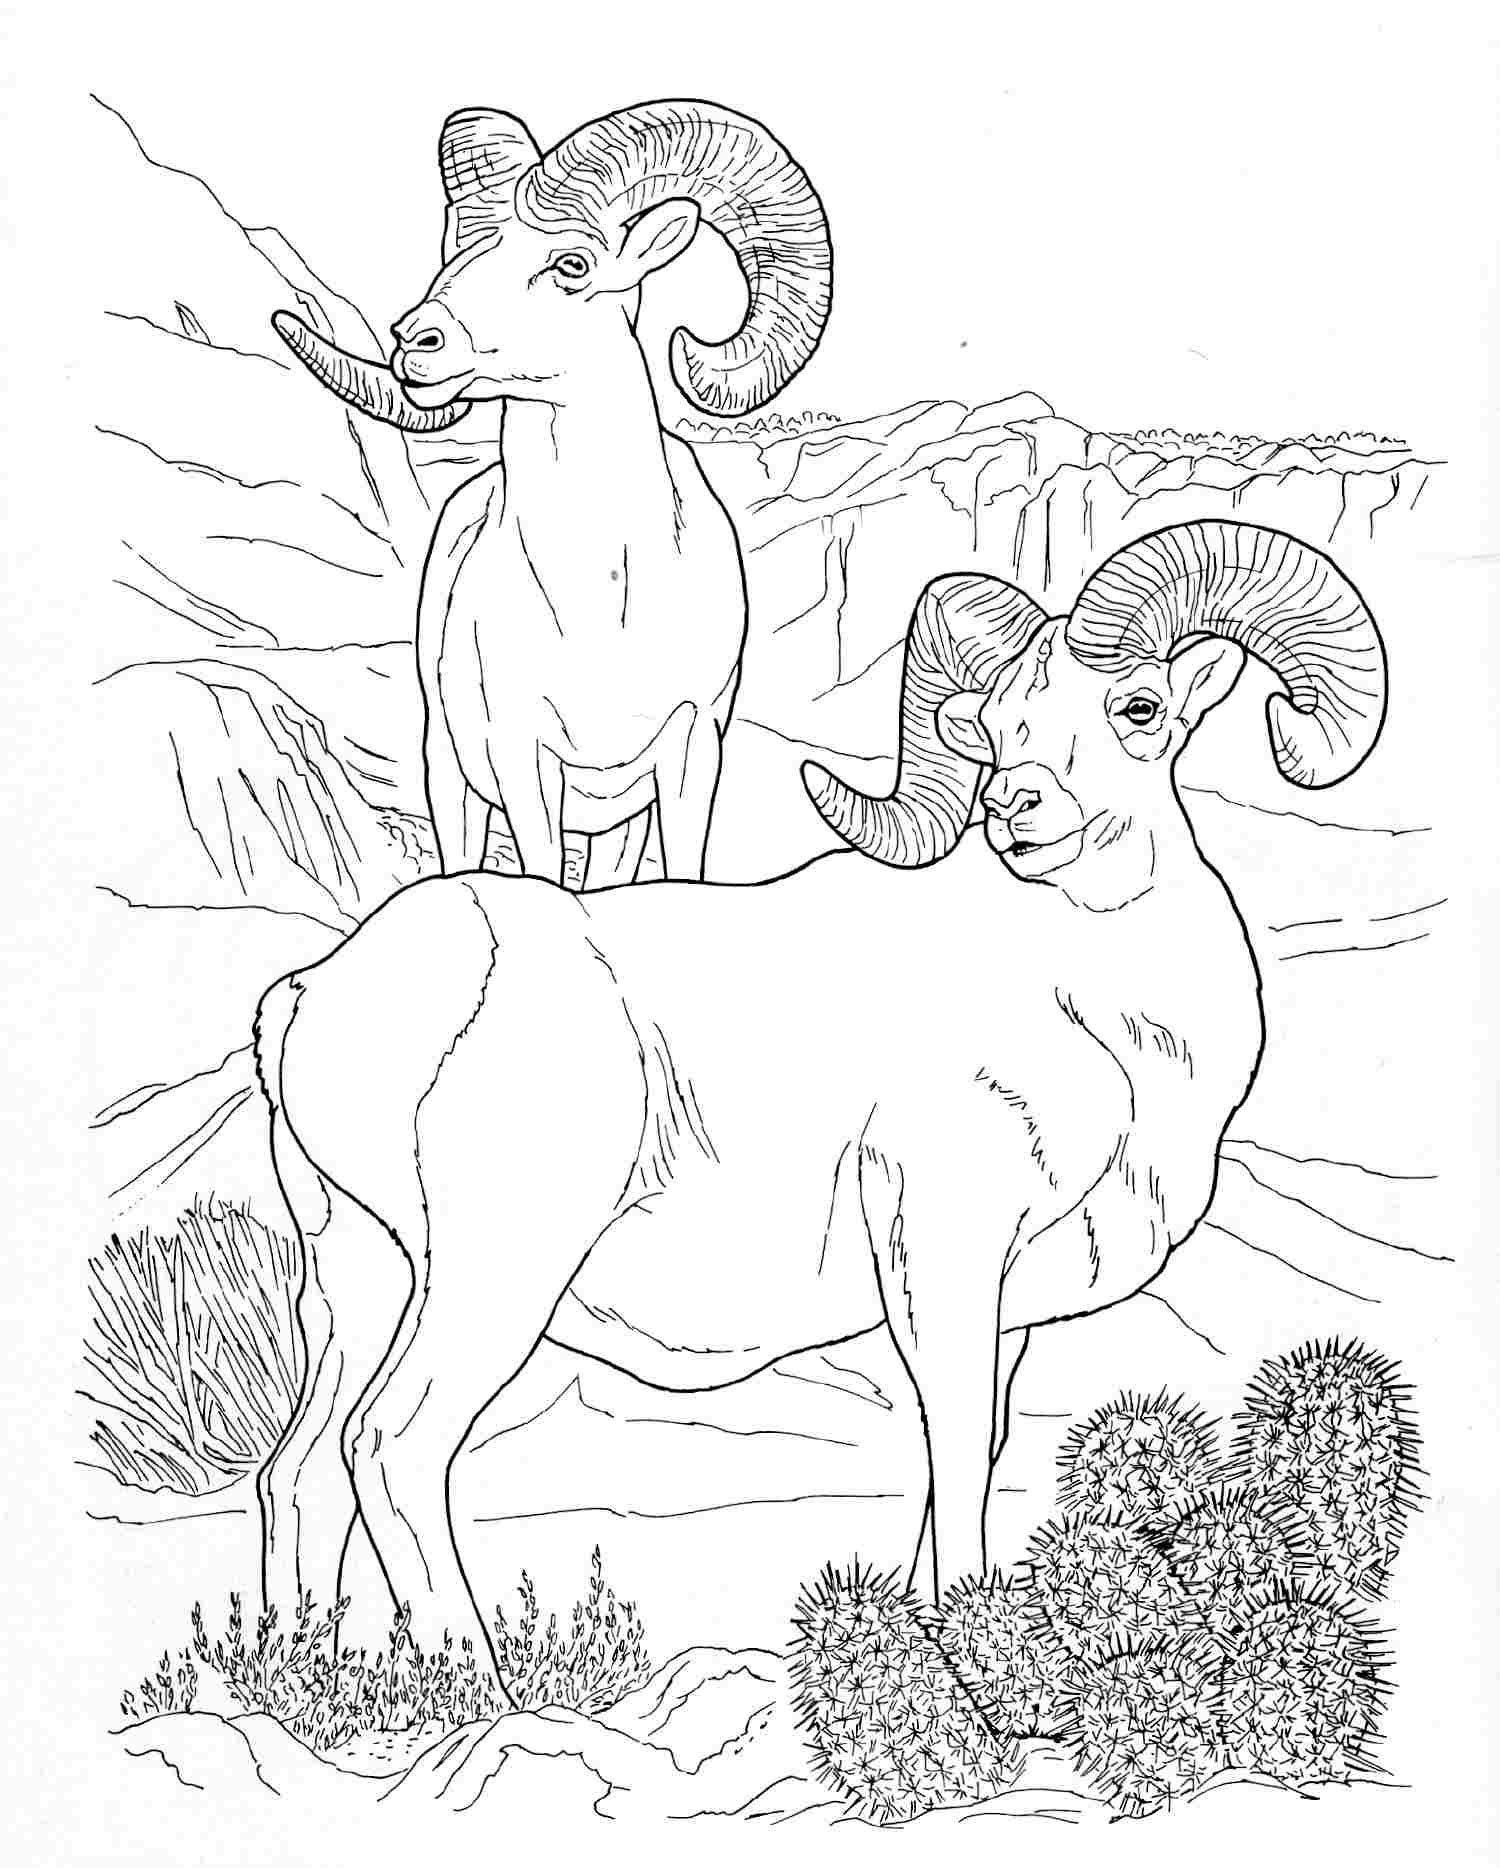 Bighorn Sheep coloring #15, Download drawings